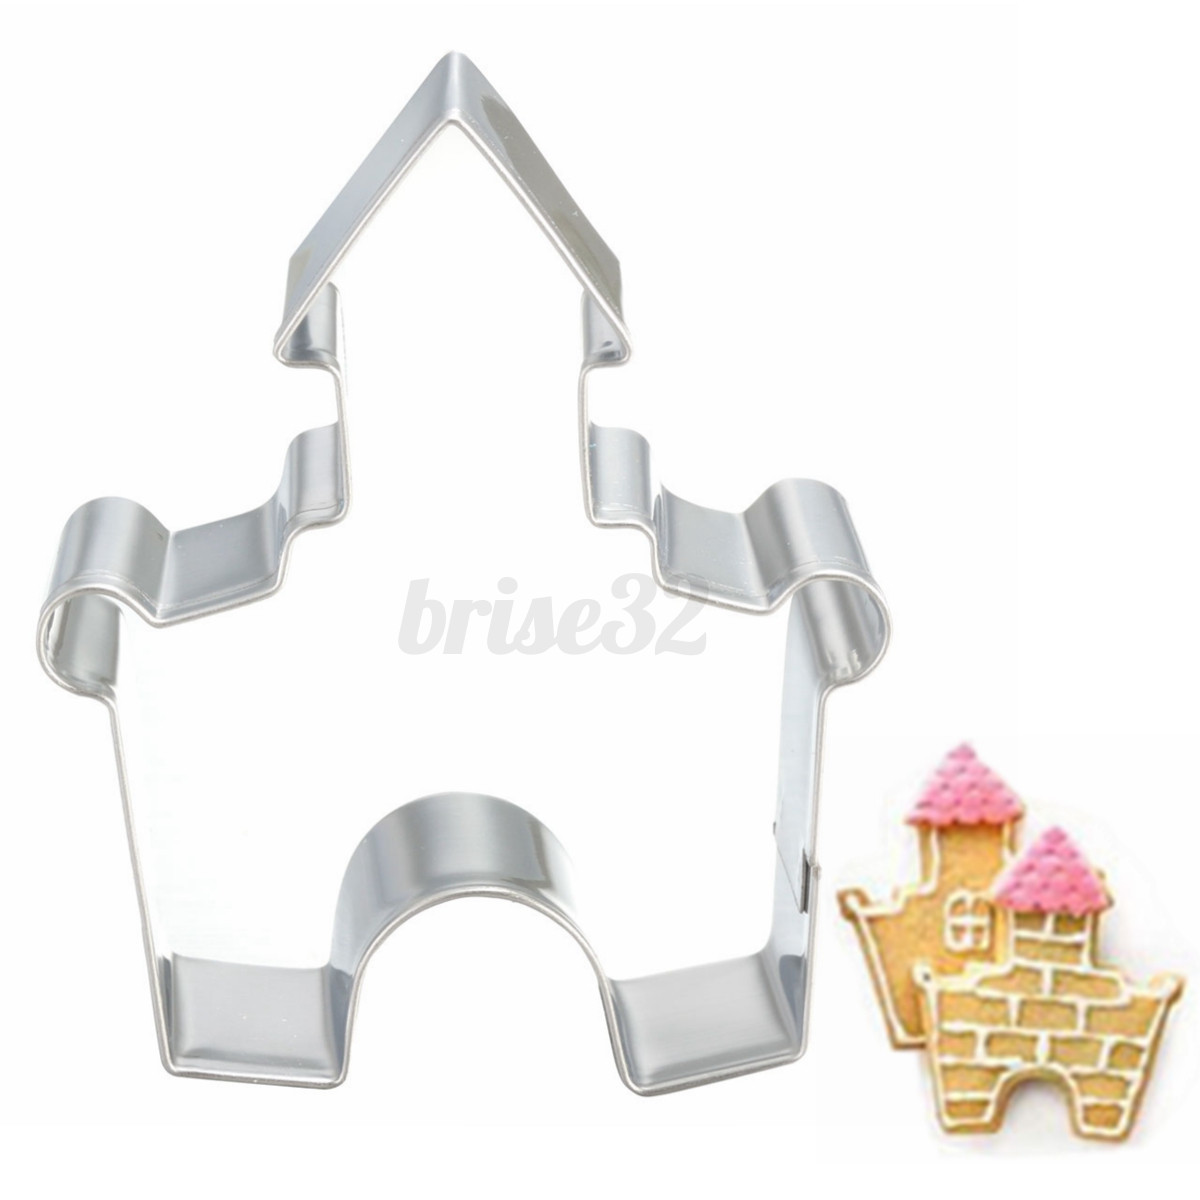 Stainless Steel Cake Biscuit Wedding Party Cookie Cutter Fondant Decorating Mold